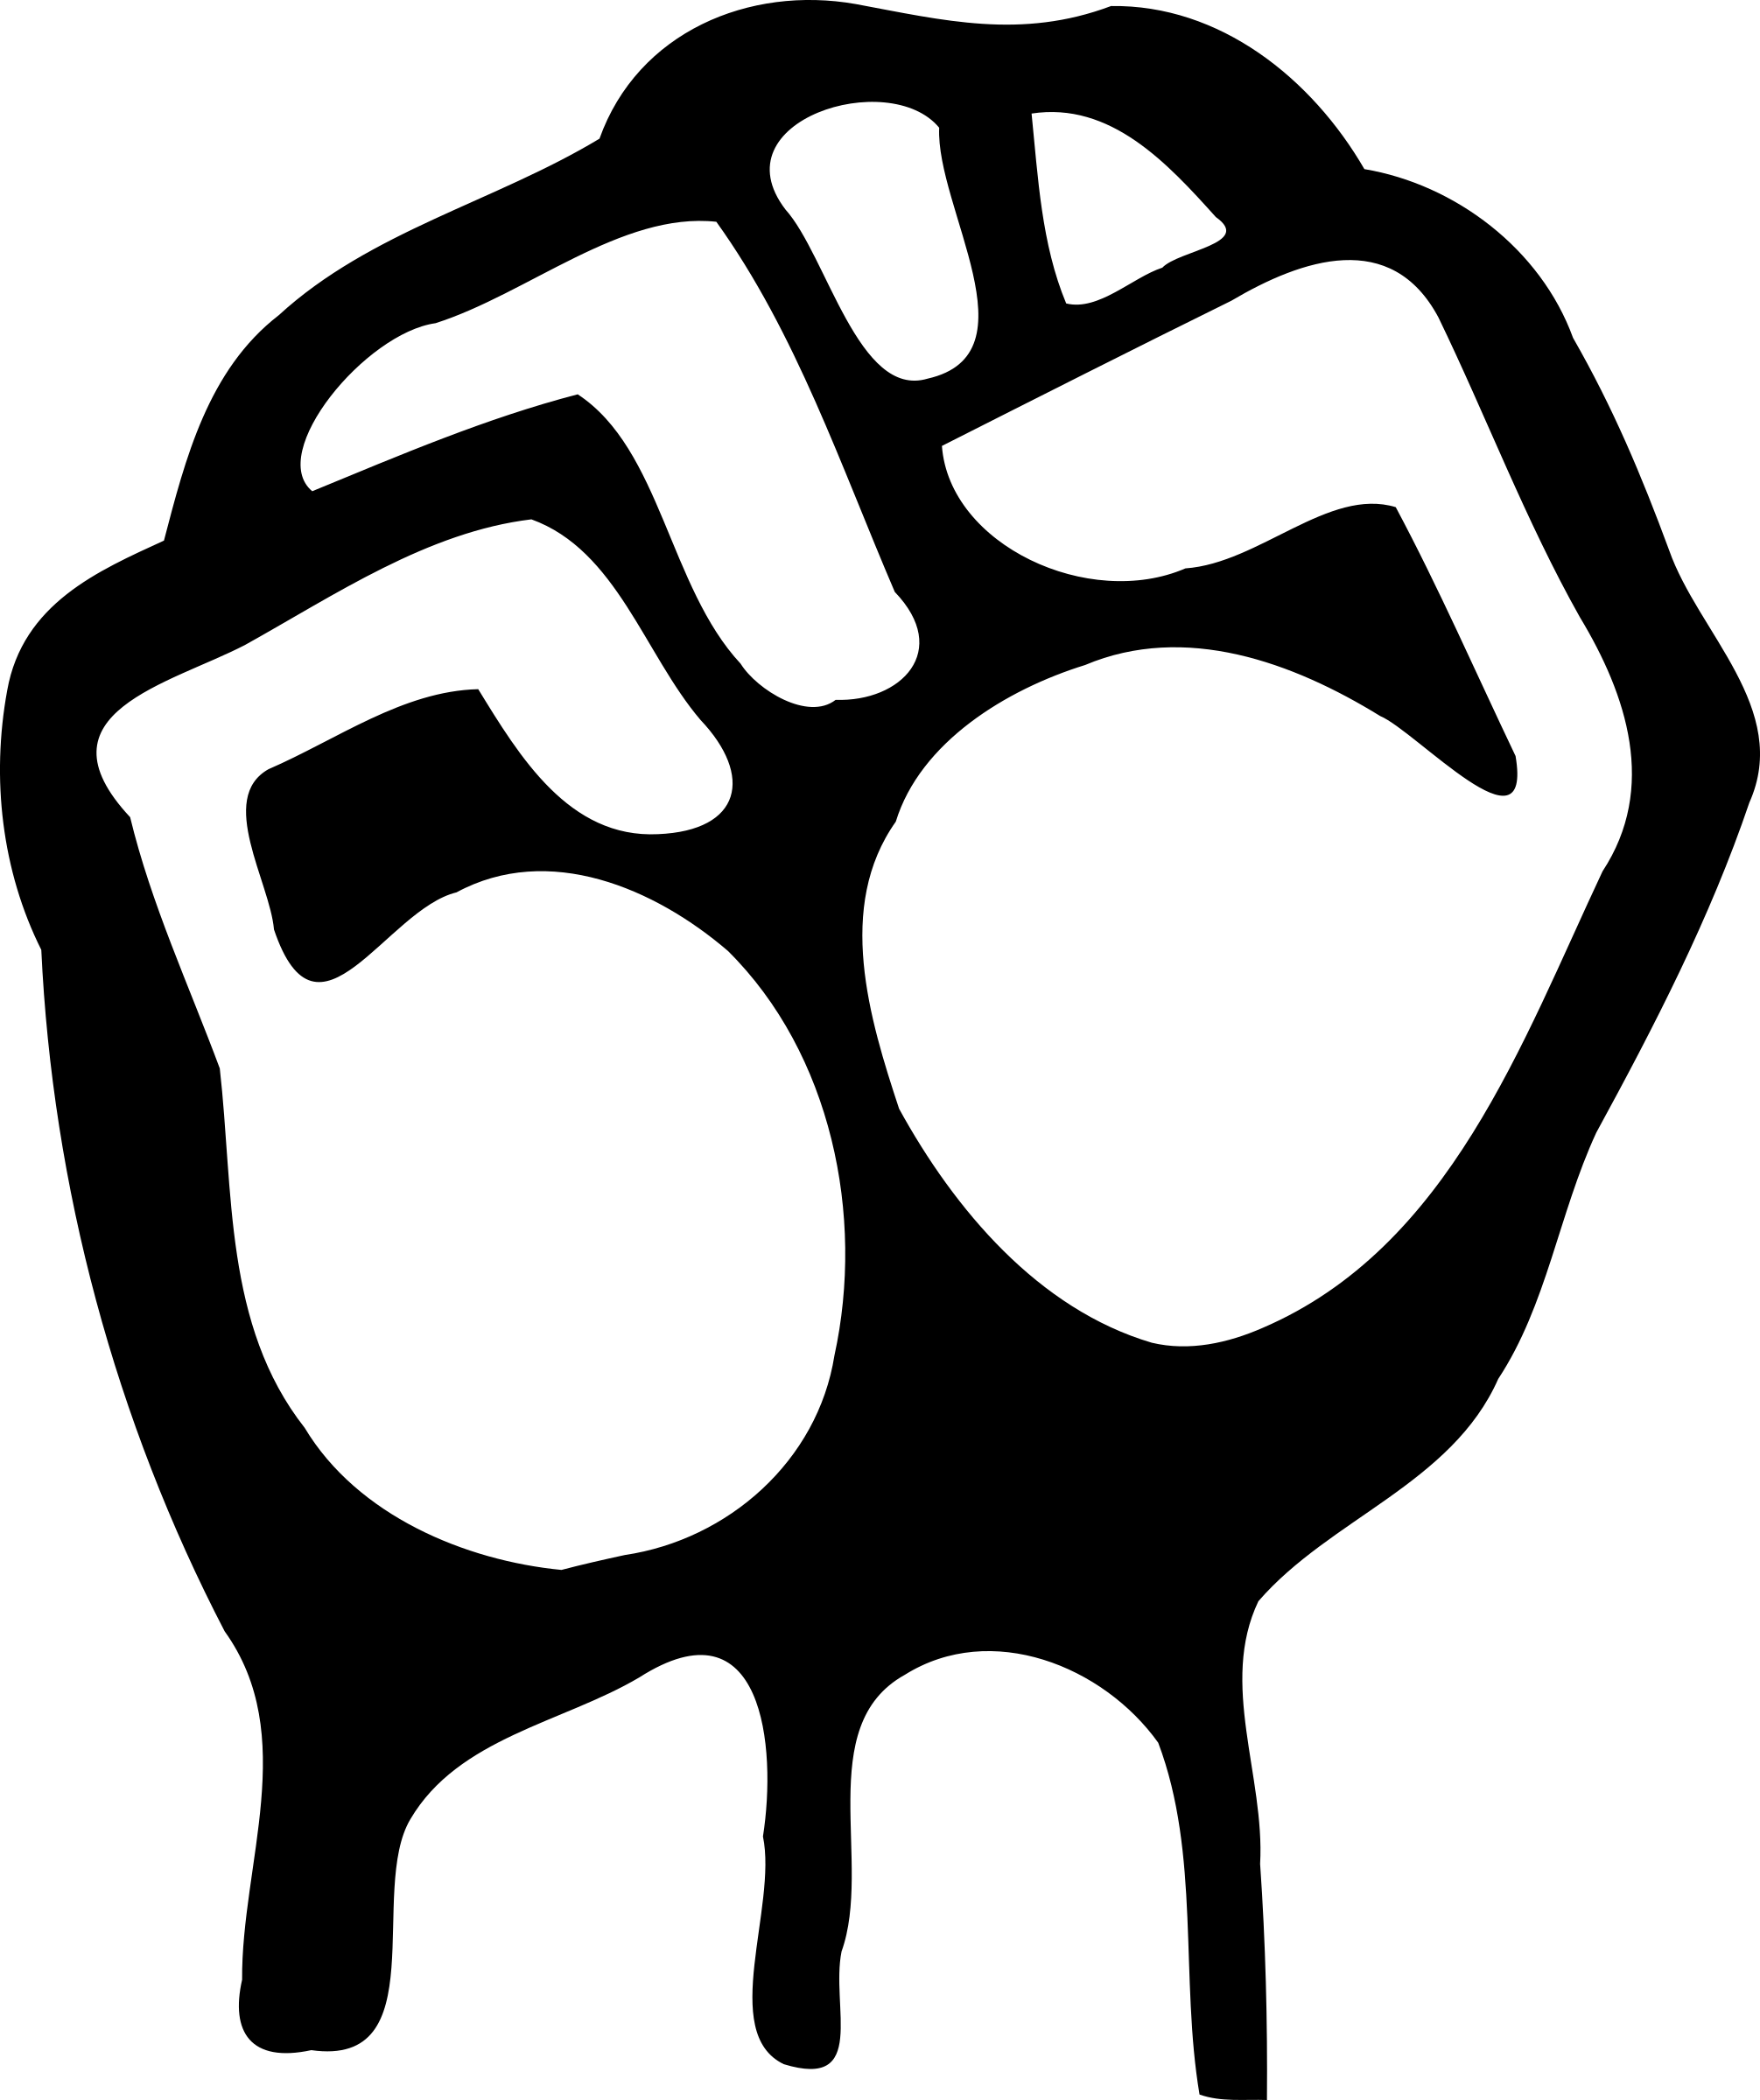 Raised fist by liftarn